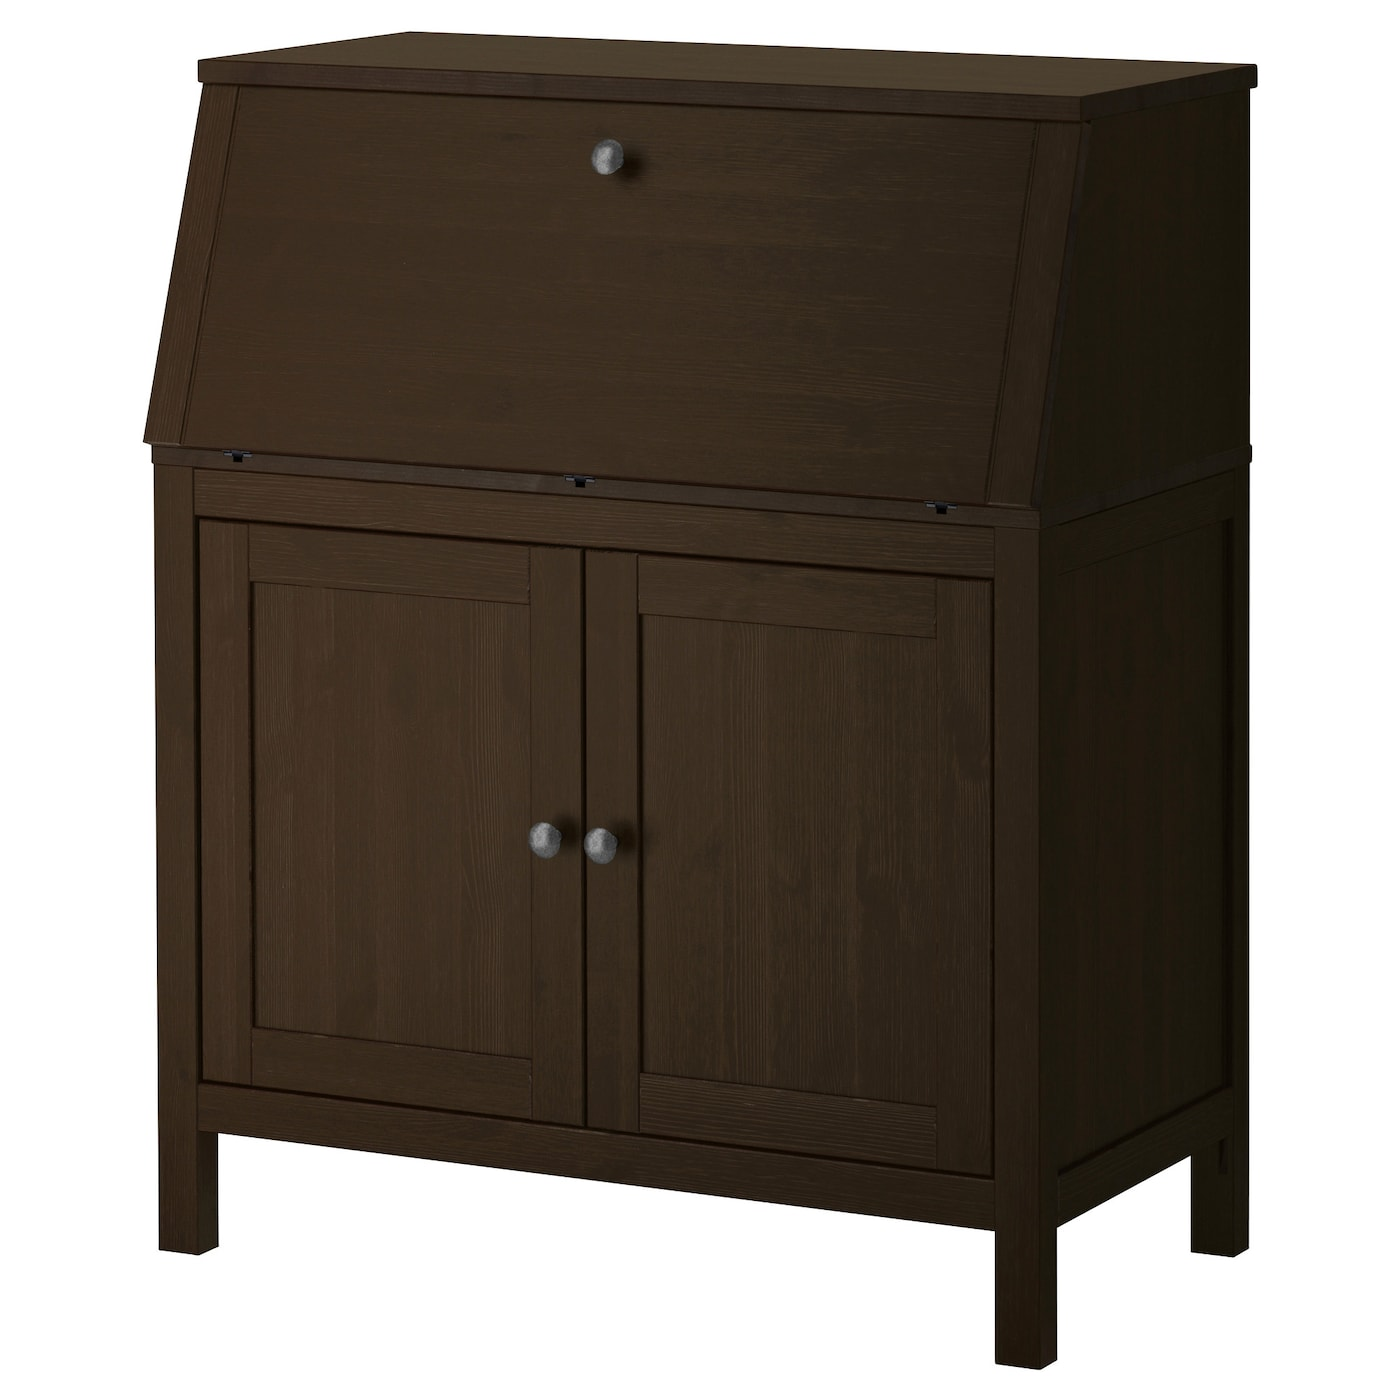 hemnes bureau black brown 89x108 cm ikea. Black Bedroom Furniture Sets. Home Design Ideas